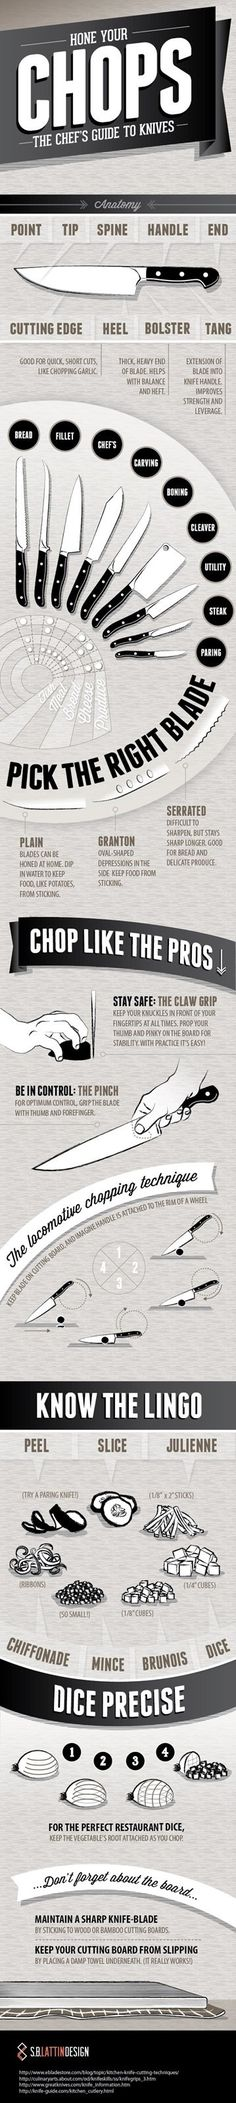 The chefs guide to knives